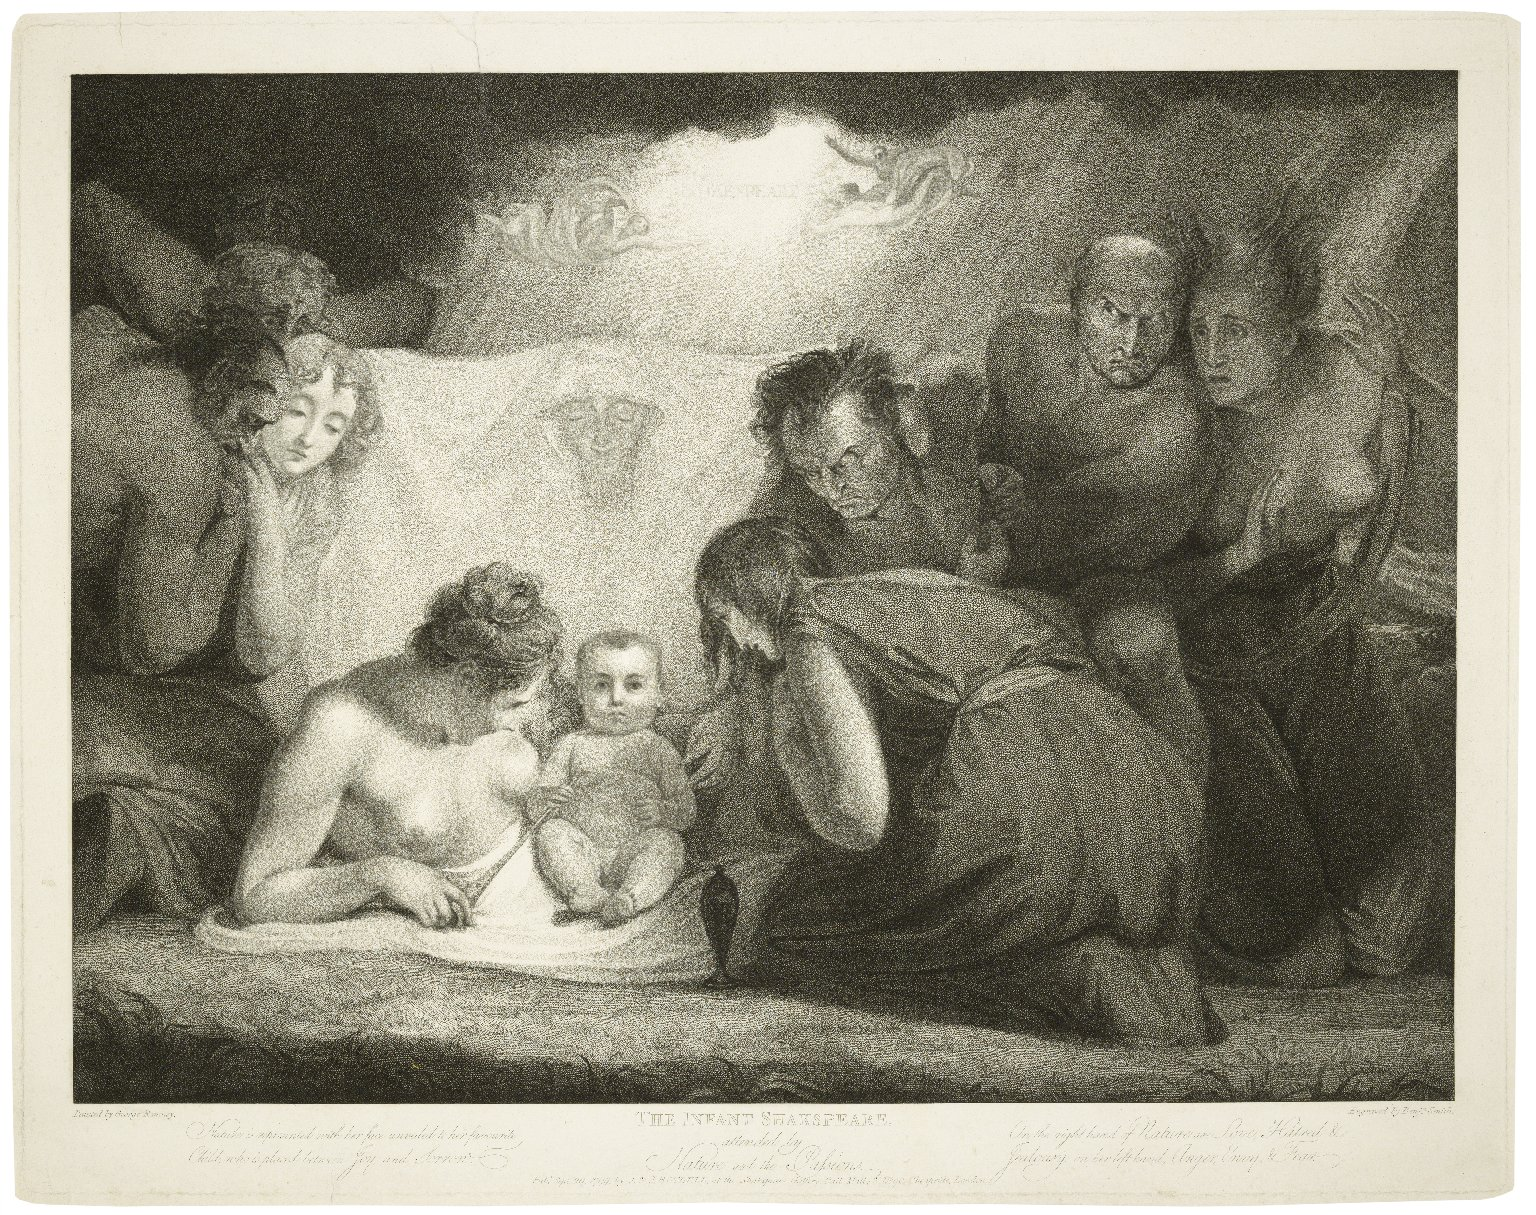 The infant Shakespeare attended by Nature and the Passions ... [graphic] / painted by George Romney ; engraved by Benjn. Smith.